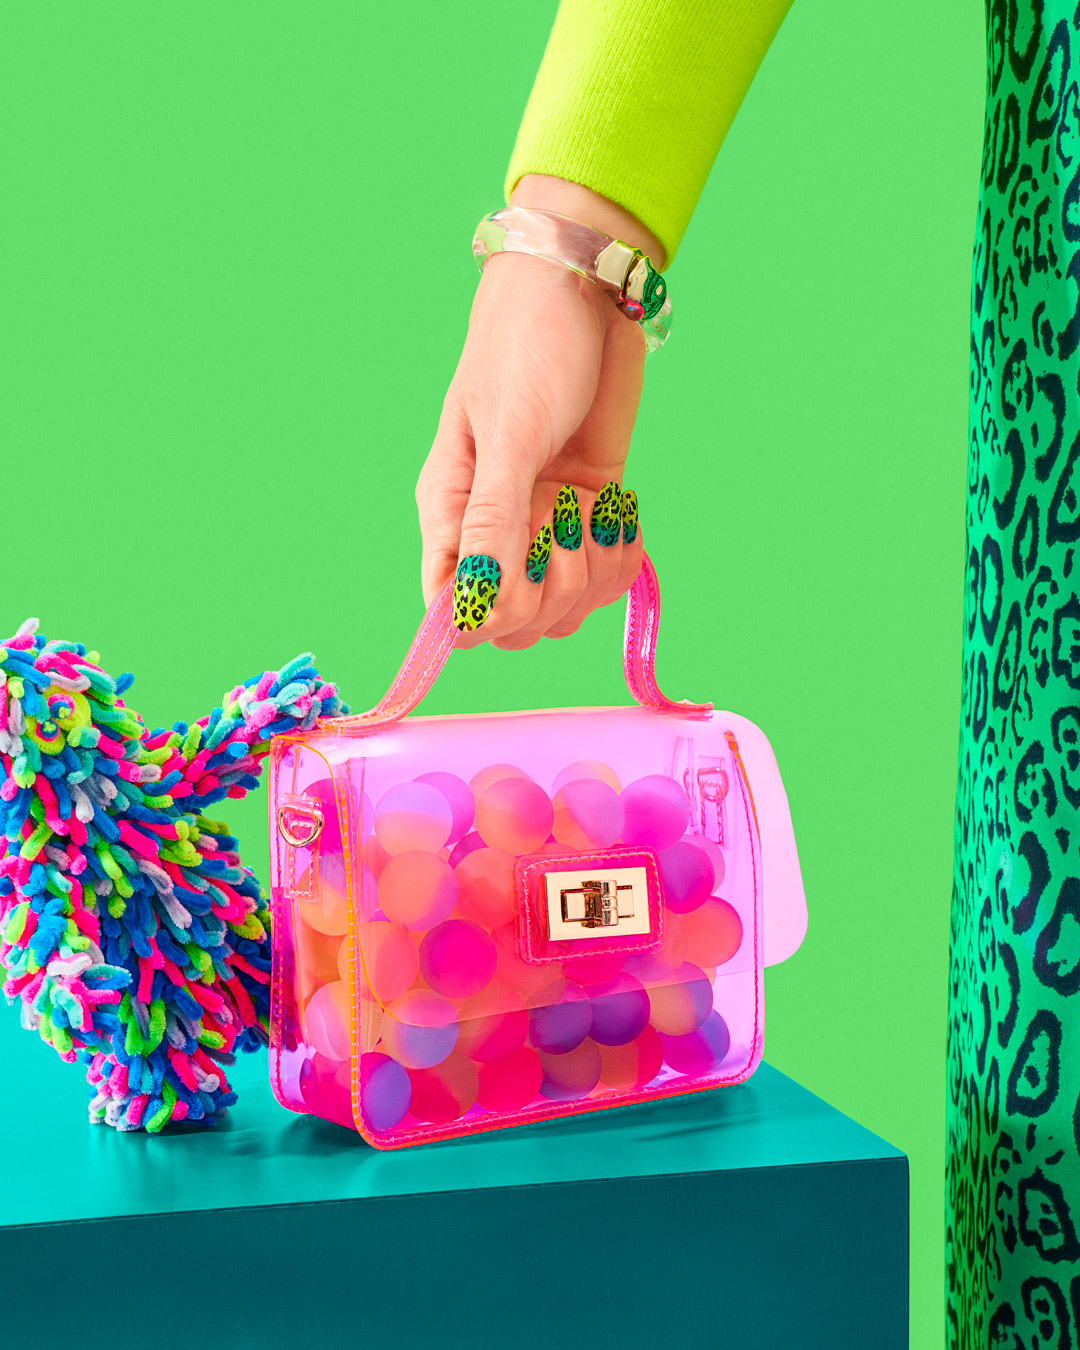 credits: photo - jenna gang, styling - chelsea volpe, nails - natsume chiharu, model - pauline sherrow  description: model wearing a green leopard outfit holding a hot pink bag filled with colorful balls.